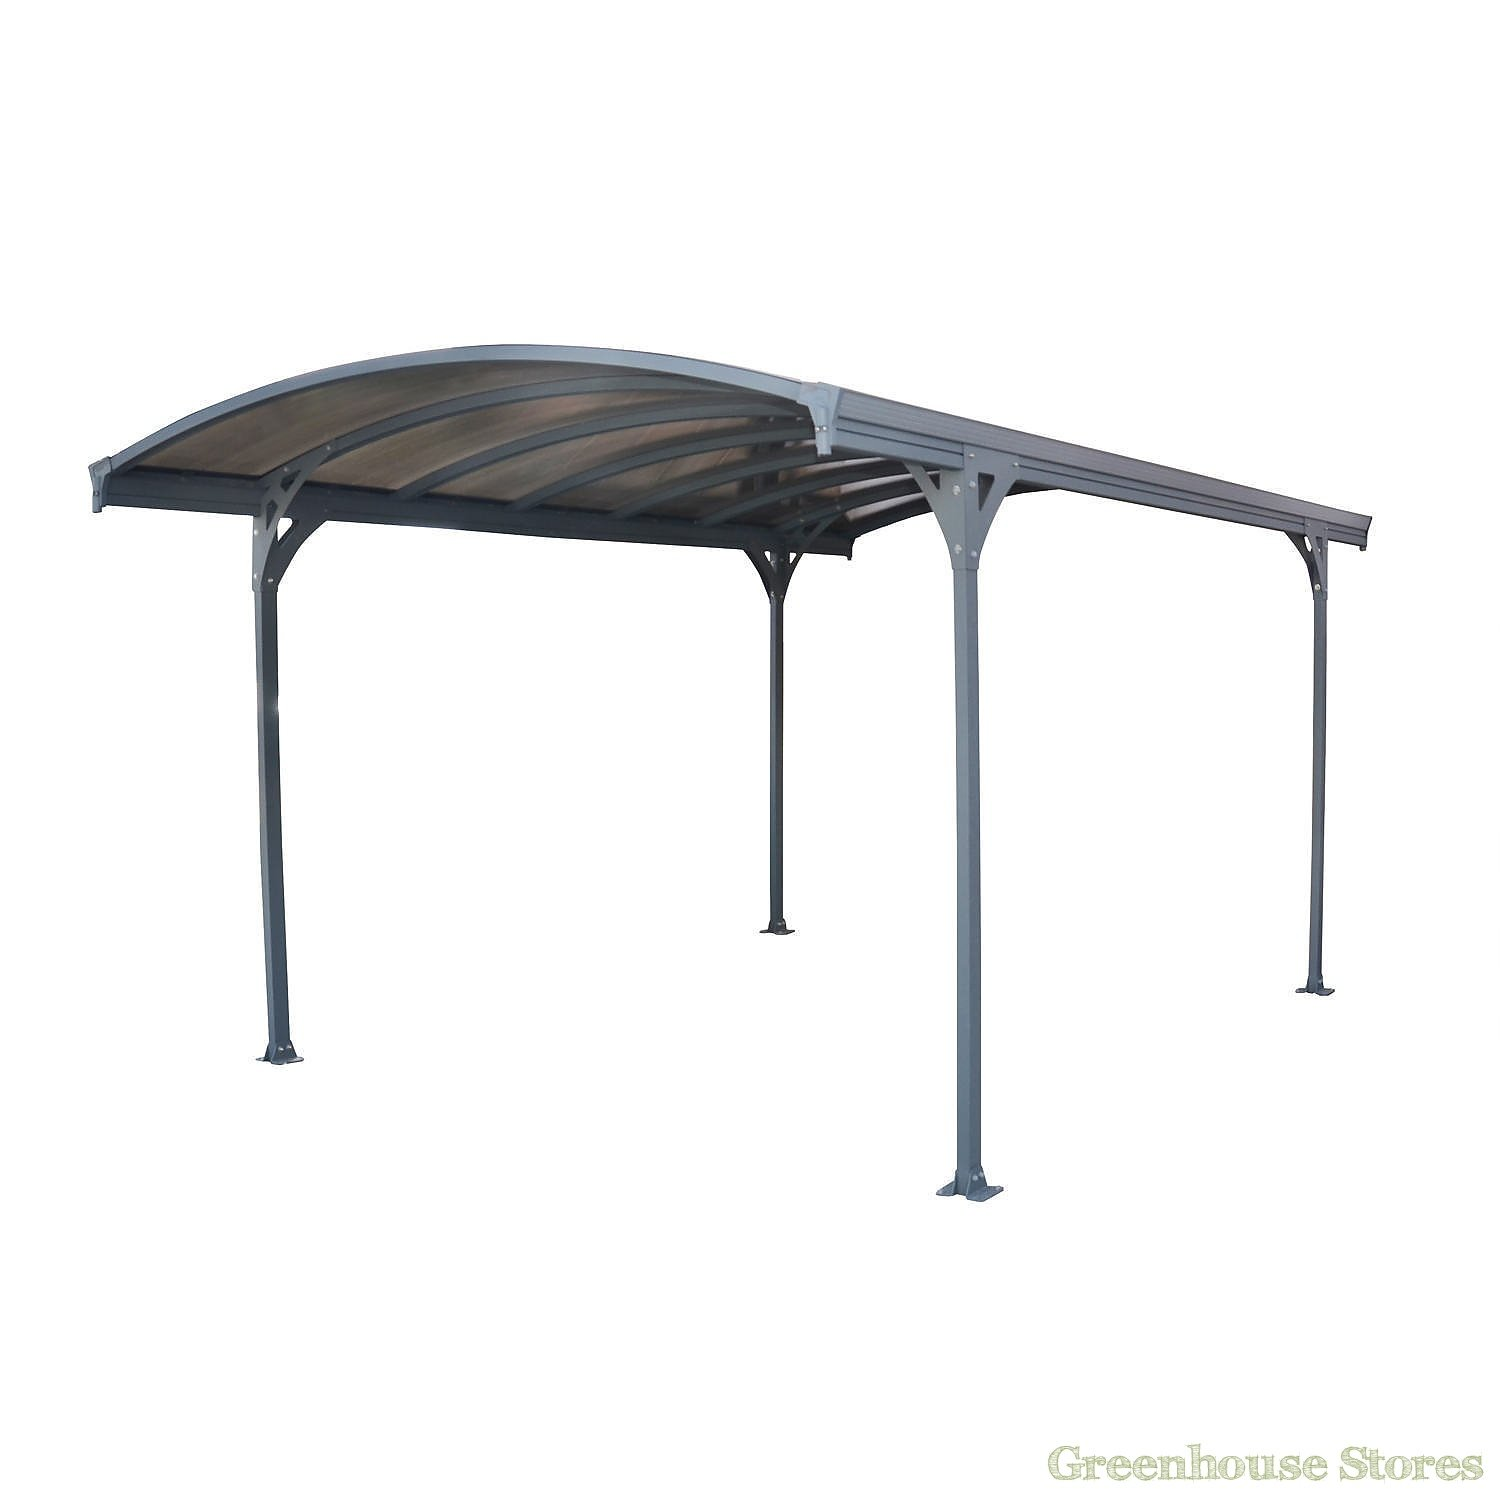 palram vitoria 5000 carport greenhouse stores. Black Bedroom Furniture Sets. Home Design Ideas